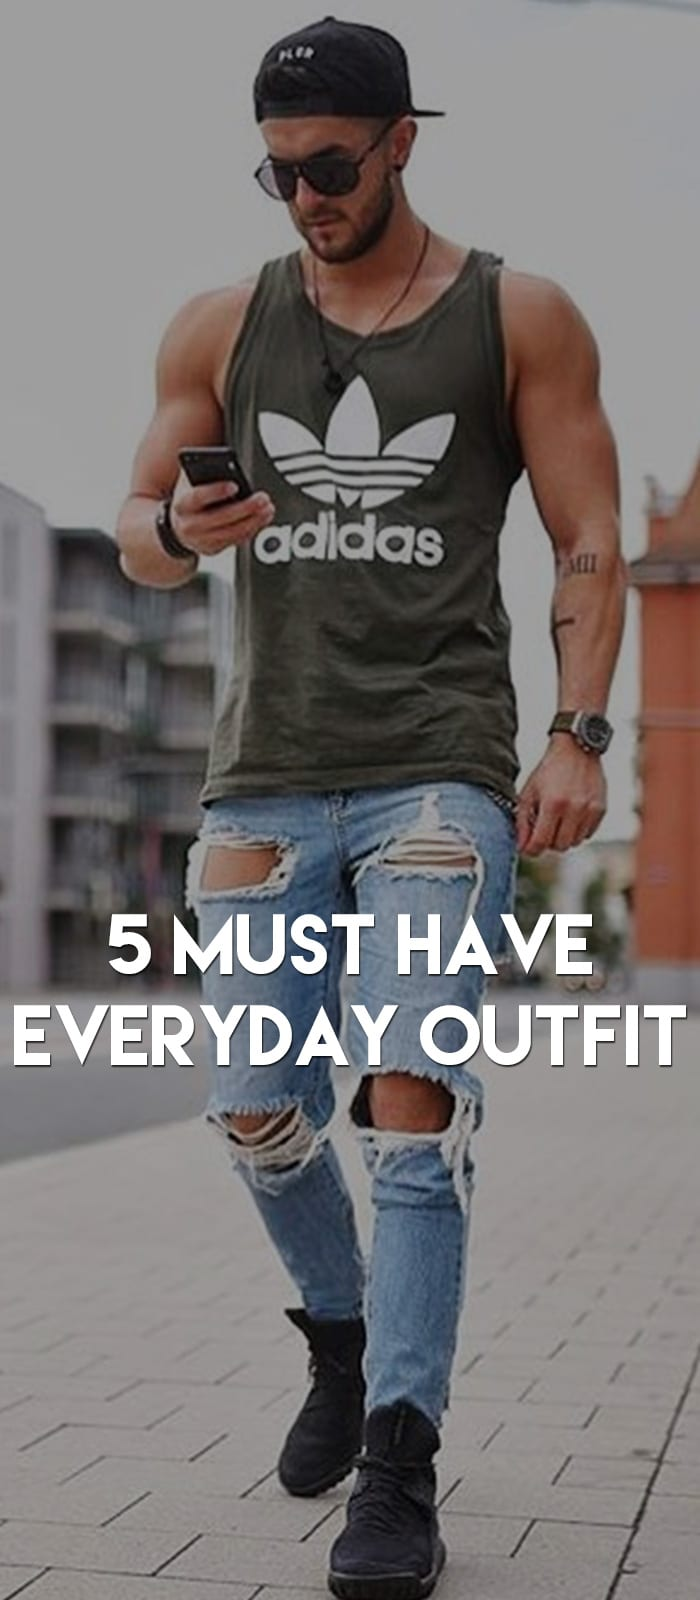 5 Must Have Everyday Outfit